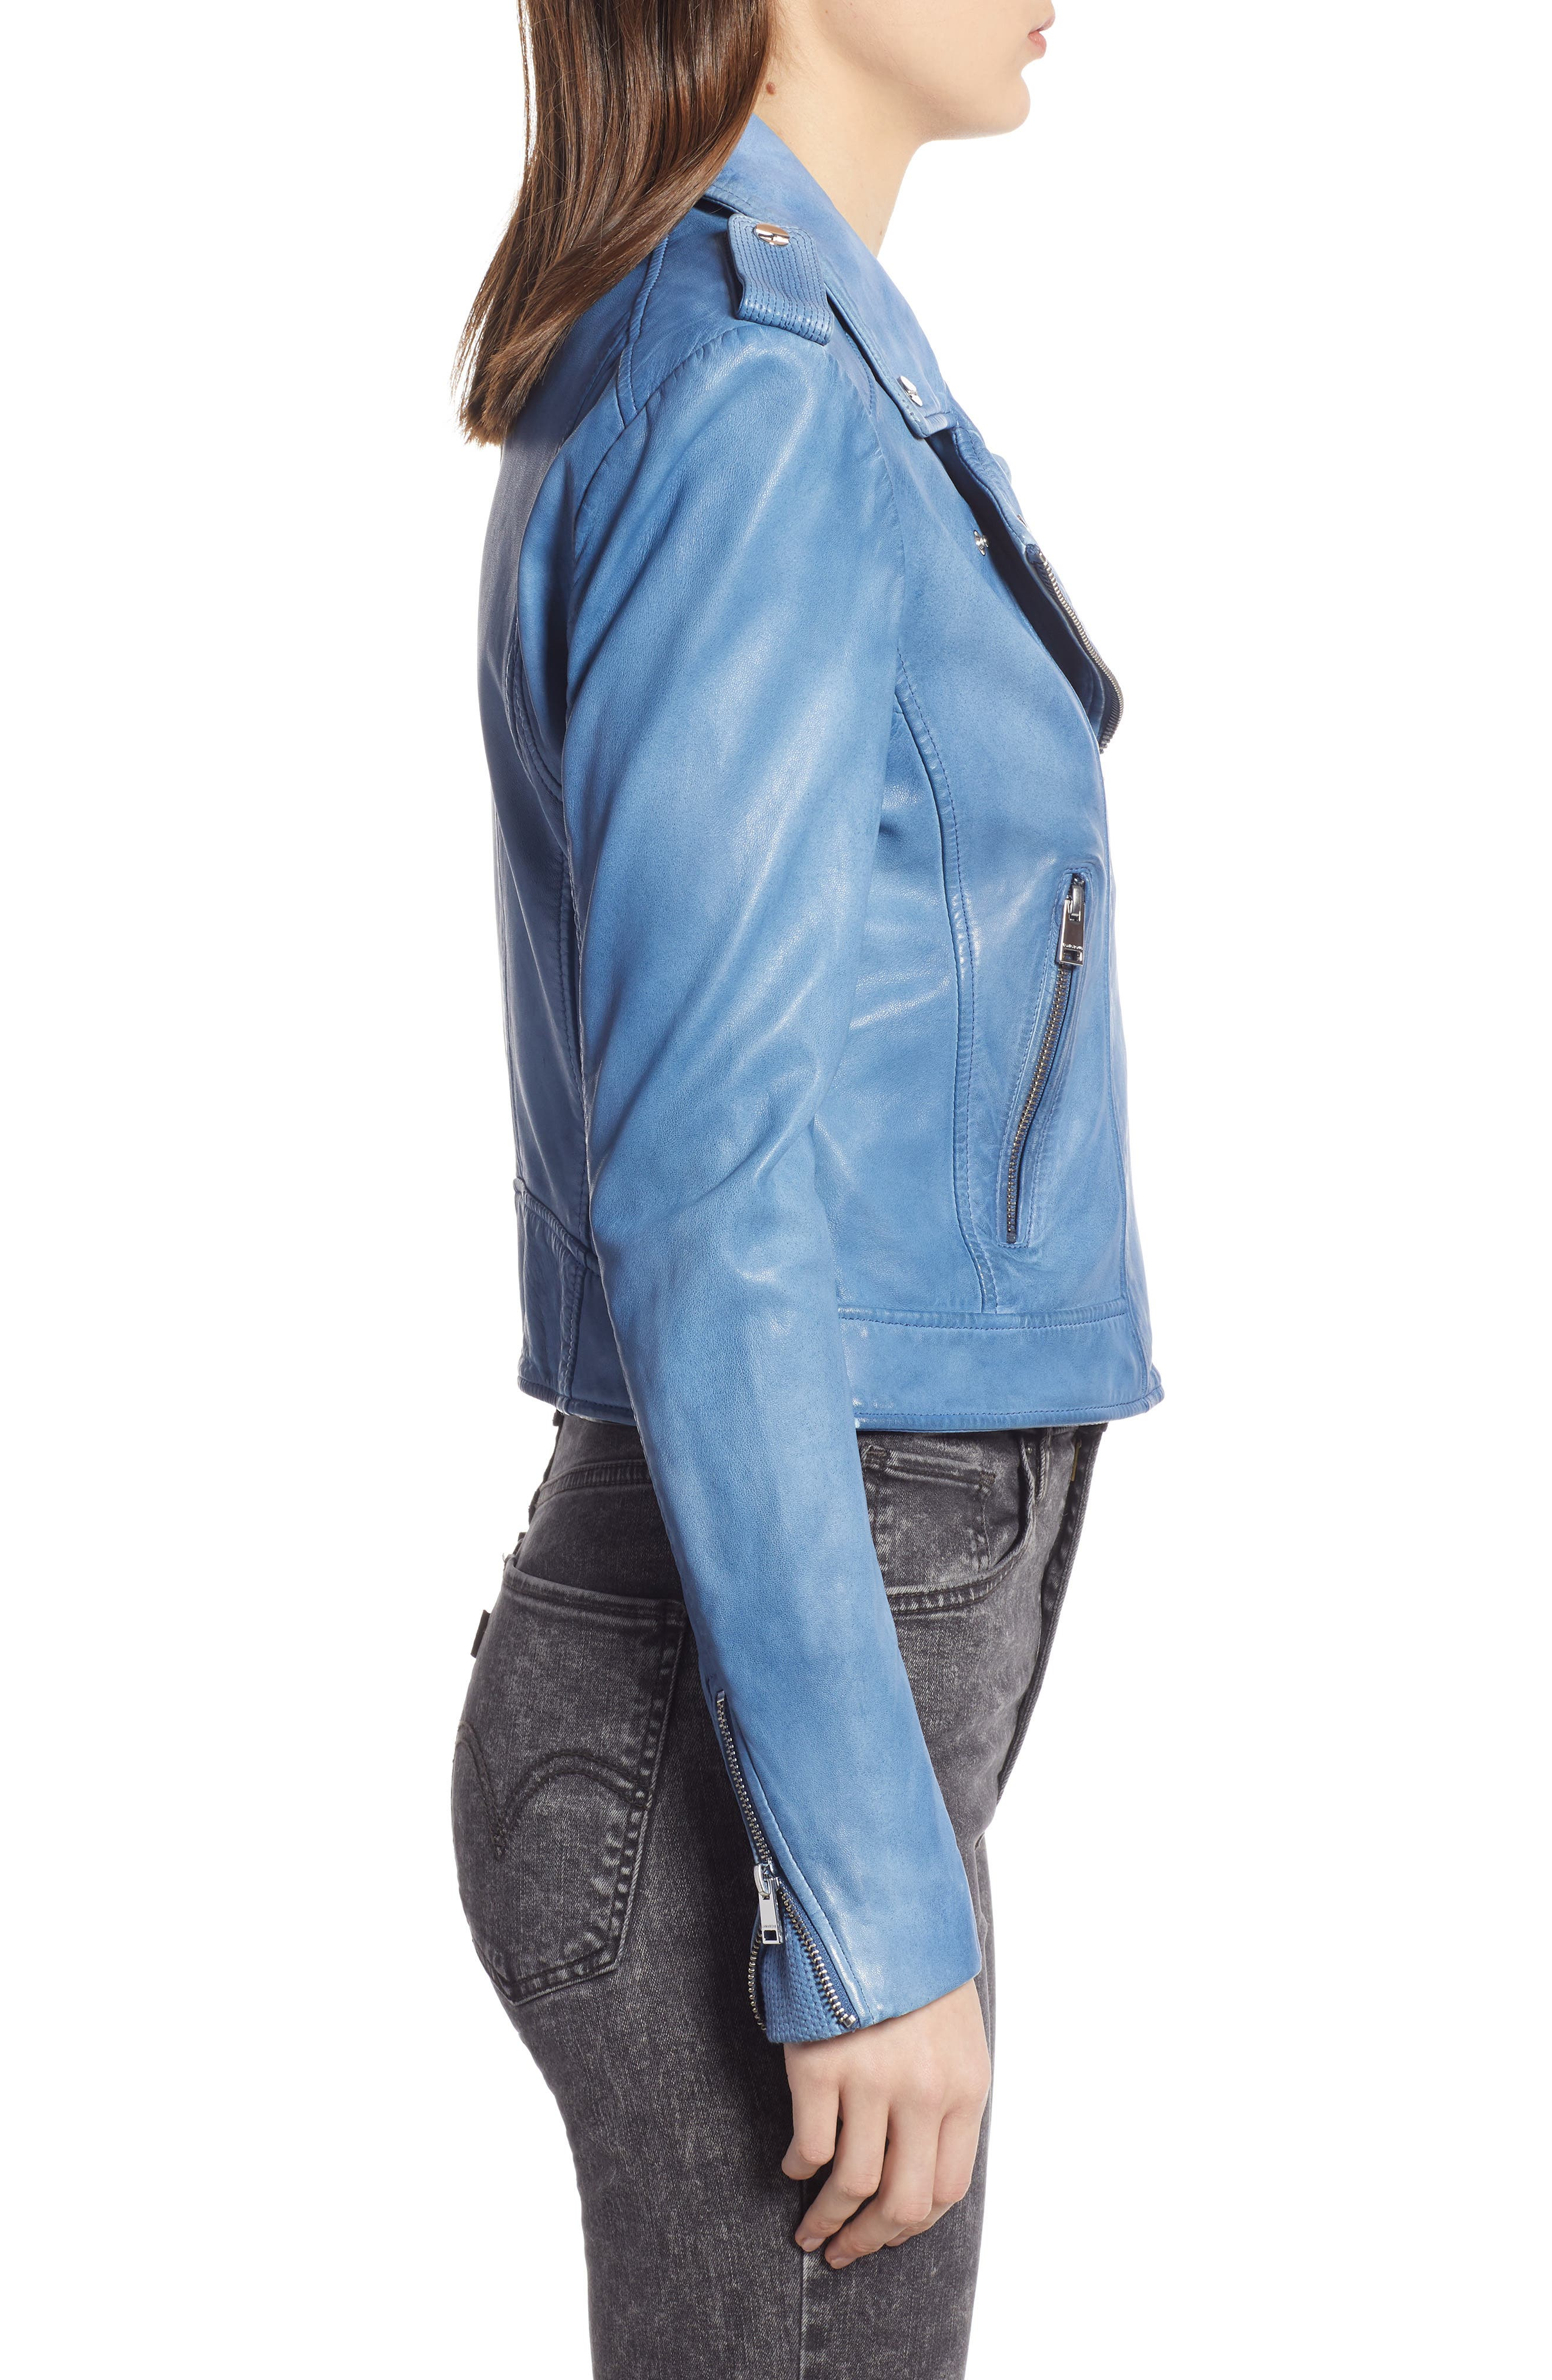 LAMARQUE, Donna Lambskin Leather Moto Jacket, Alternate thumbnail 3, color, FADED DENIM